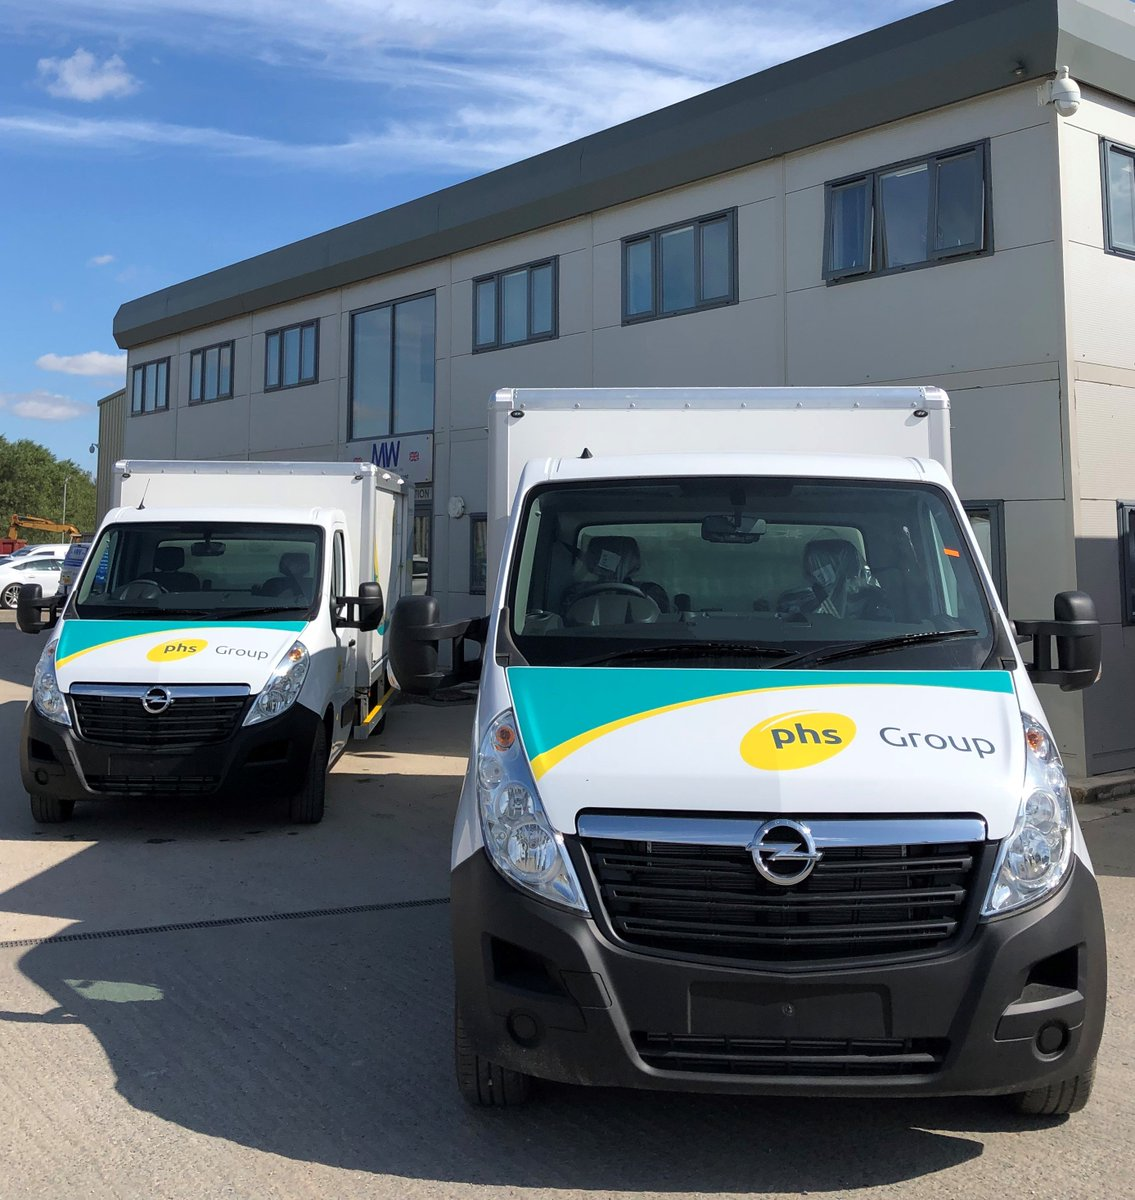 test Twitter Media - These ones are going to Ireland ☘️  3.5t Opel Movano 5 door washrooms for @phsgroup   With thanks to @PentagonDG   #PHS #Pentagon #WashRooms #Ireland #MWHull #Design #Build #Repair #Paint https://t.co/qNqQzu8aHQ